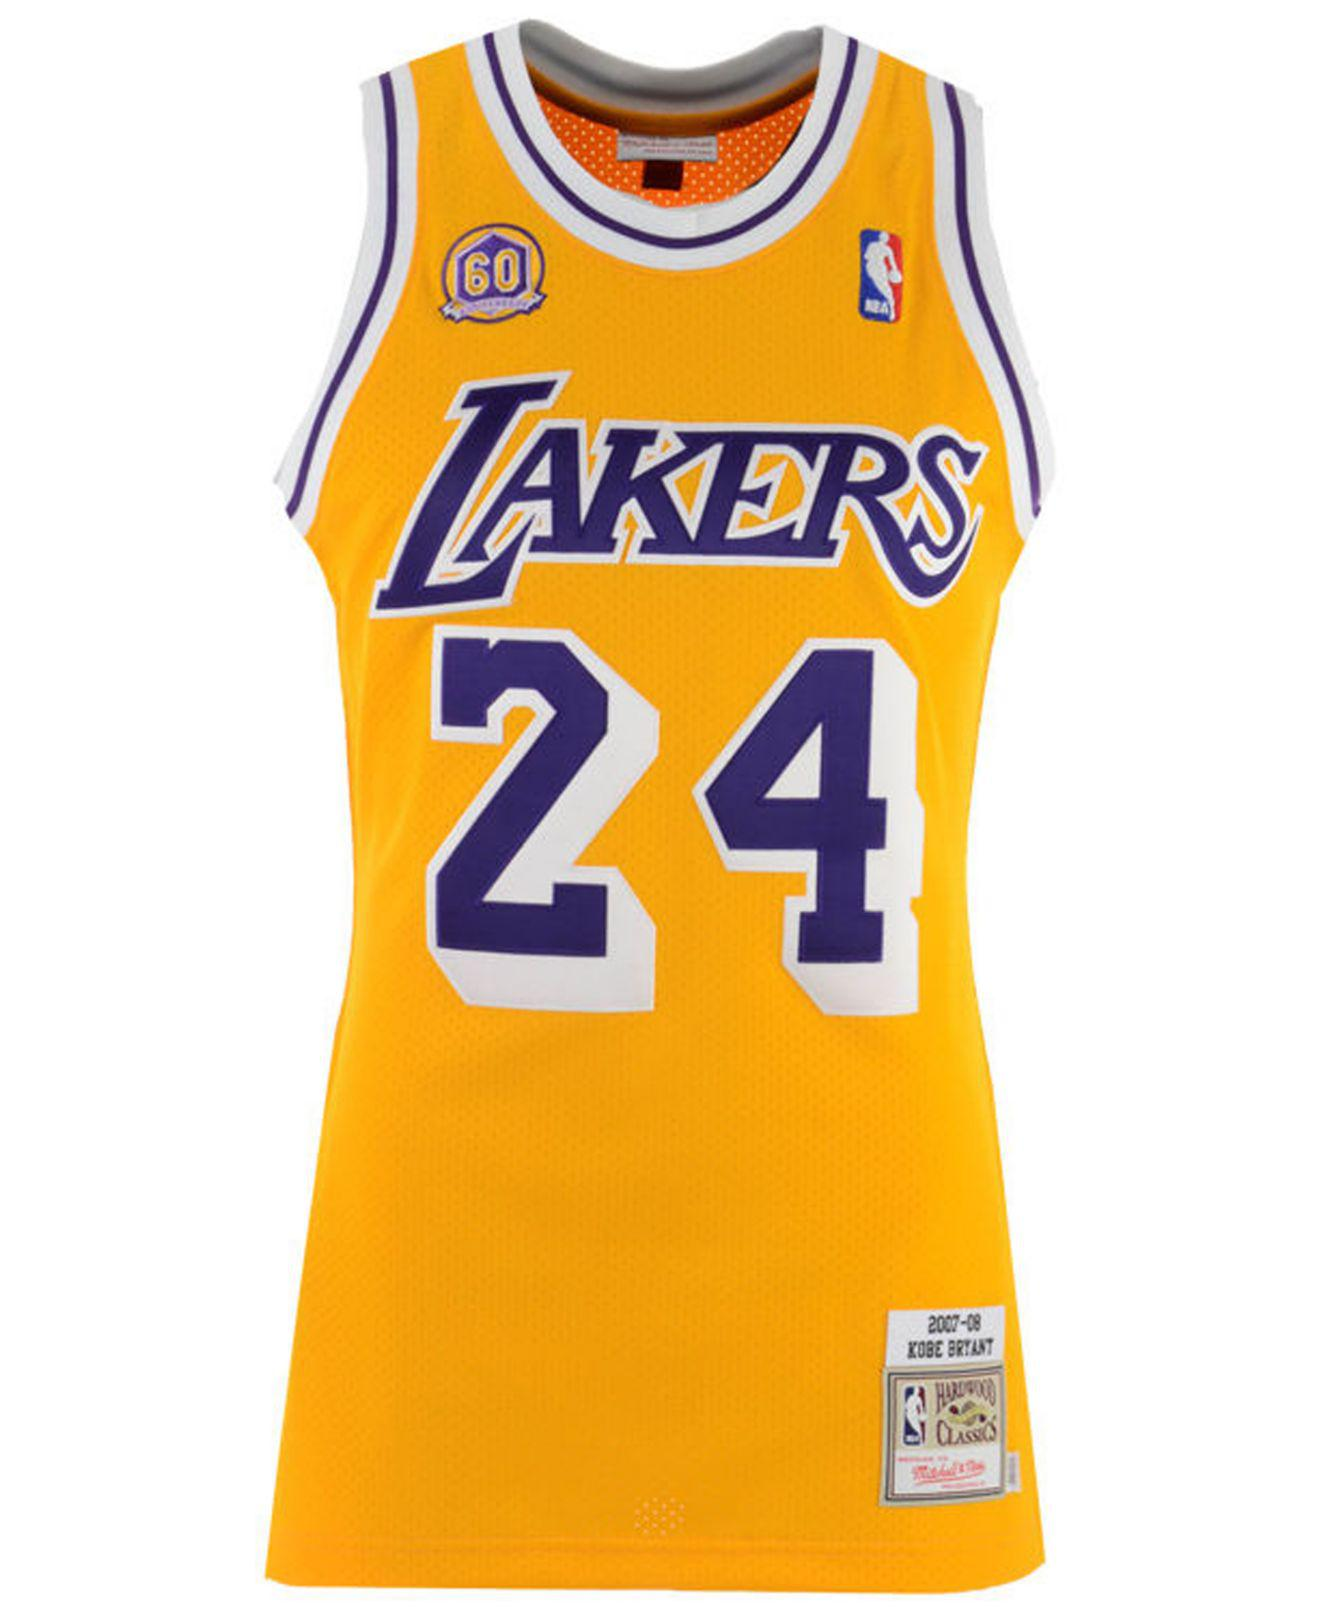 6efda285b Mitchell   Ness Kobe Bryant Los Angeles Lakers Authentic Jersey in Metallic  for Men - Lyst